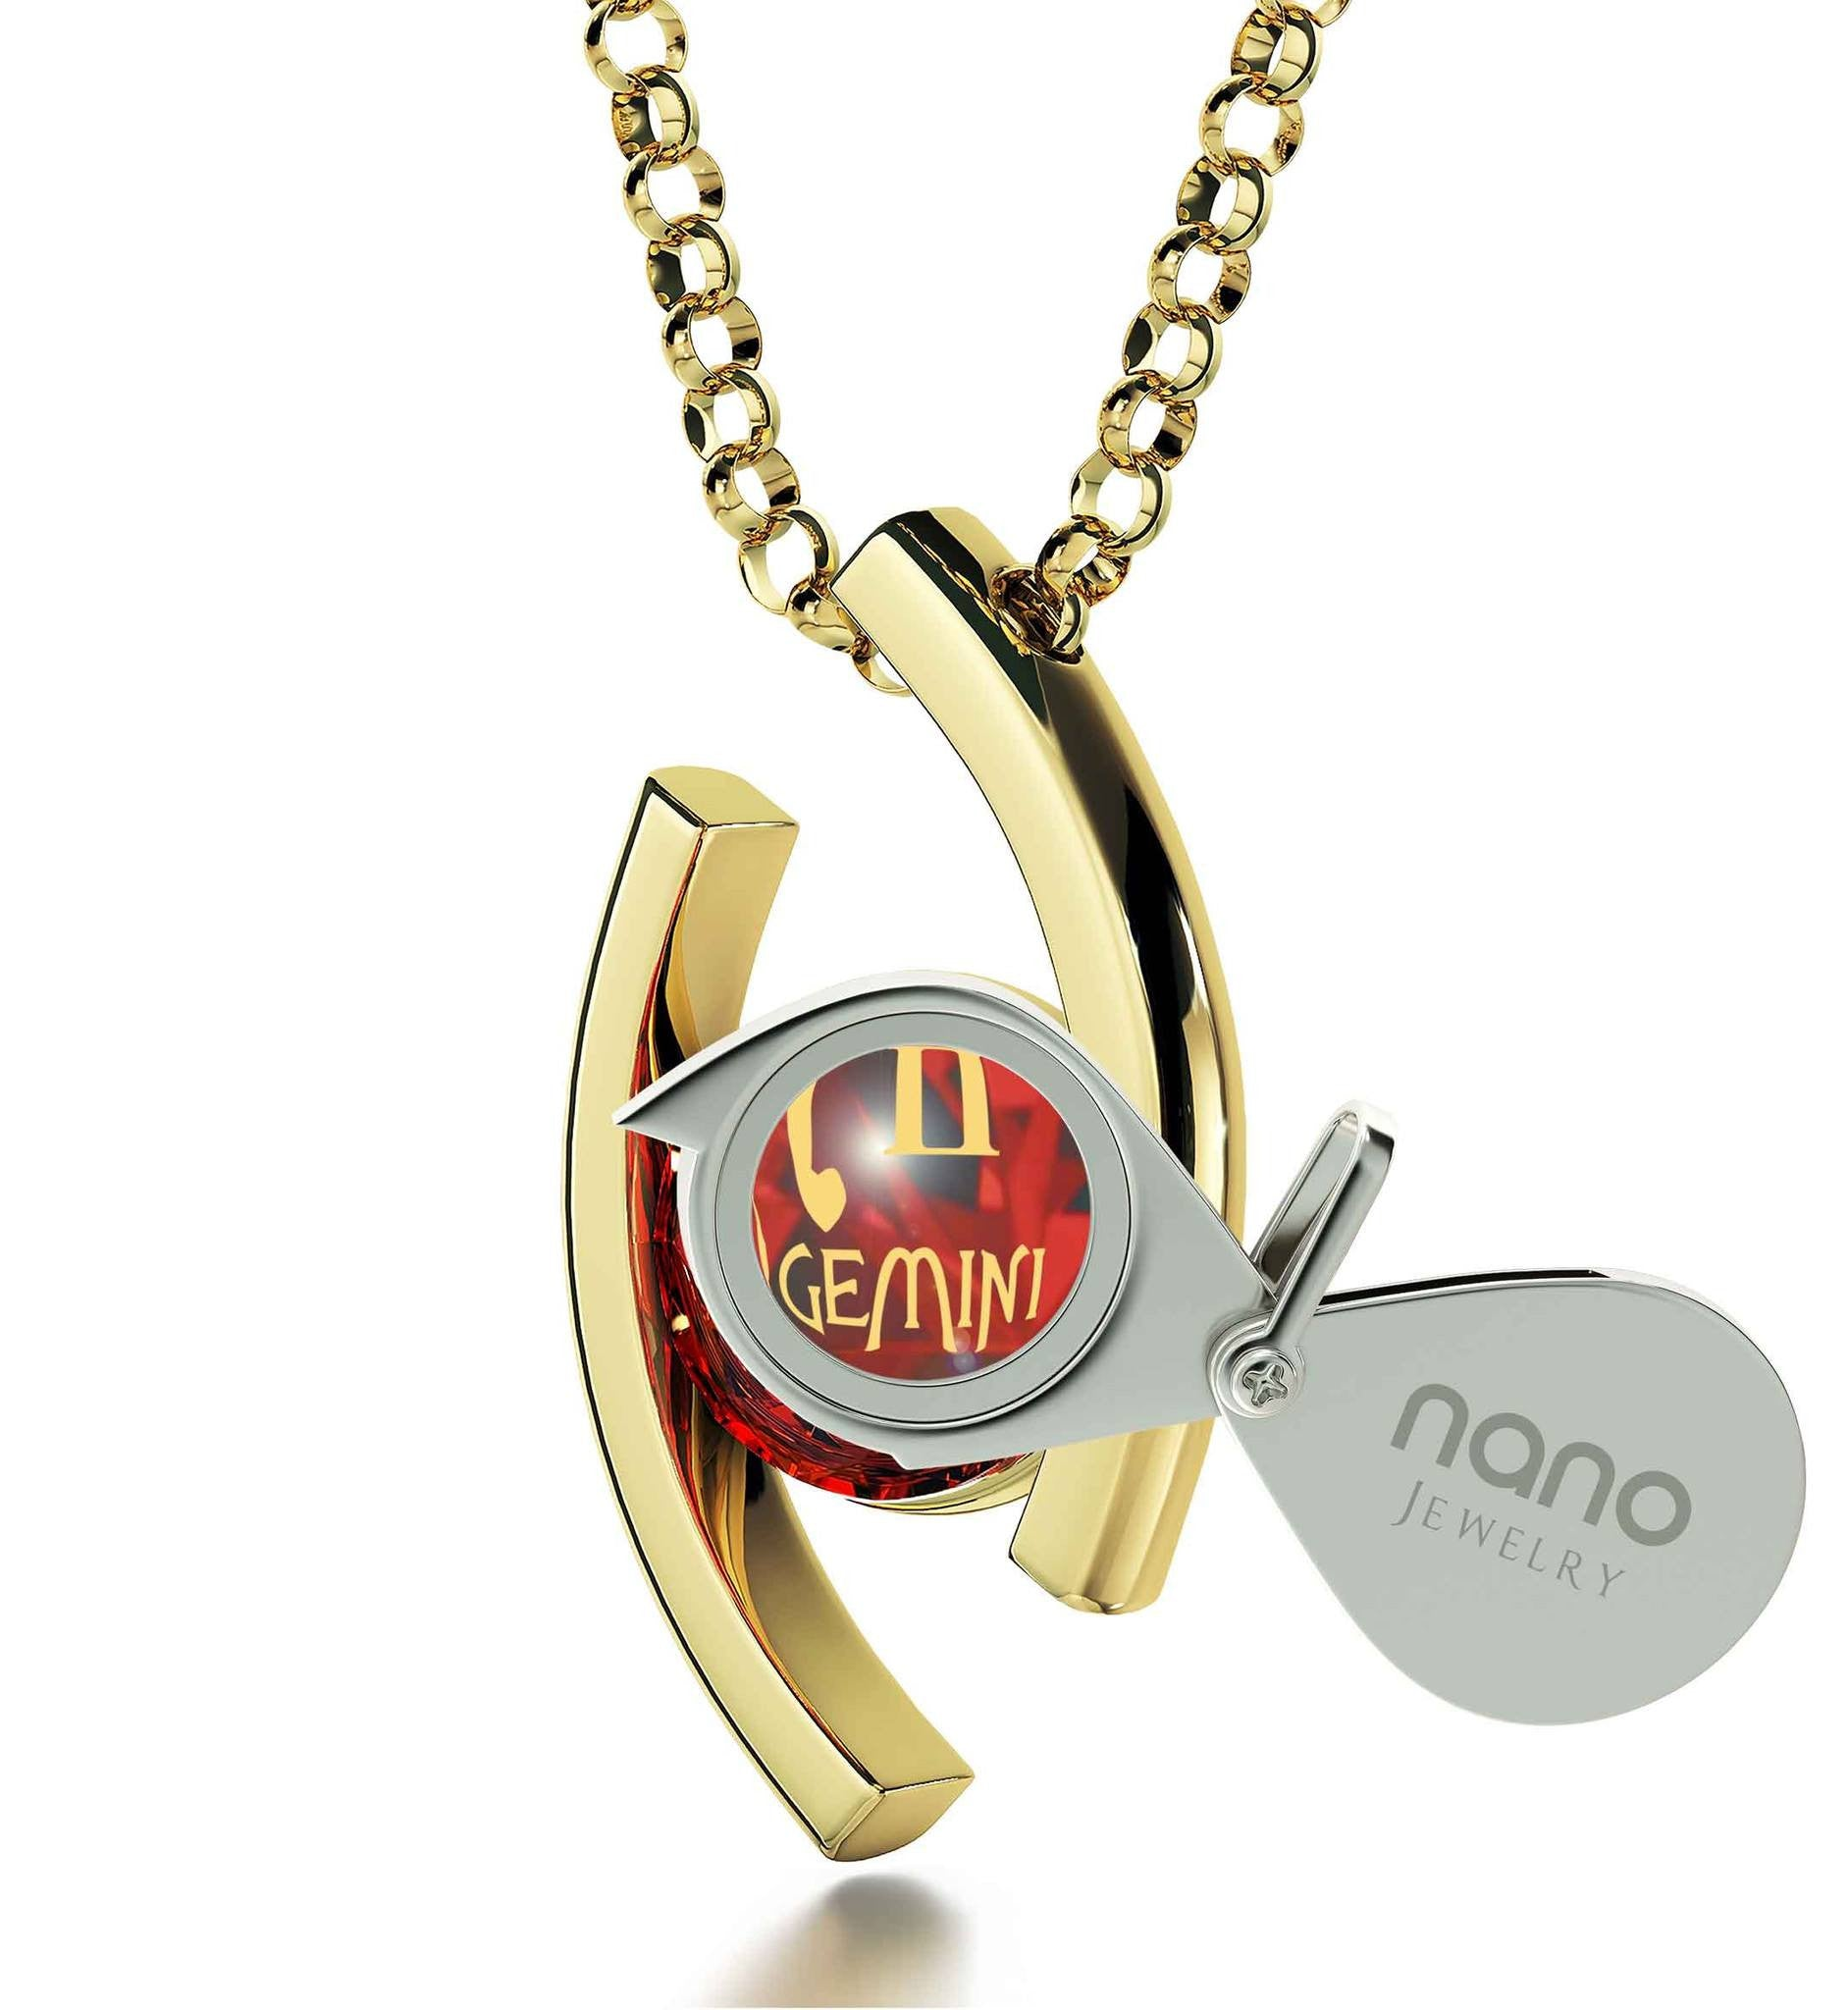 """Gemini Jewelry With 24k Imprint, Womens Christmas Ideas, Best Presents for Girlfriend, Red Pendant Necklace"""